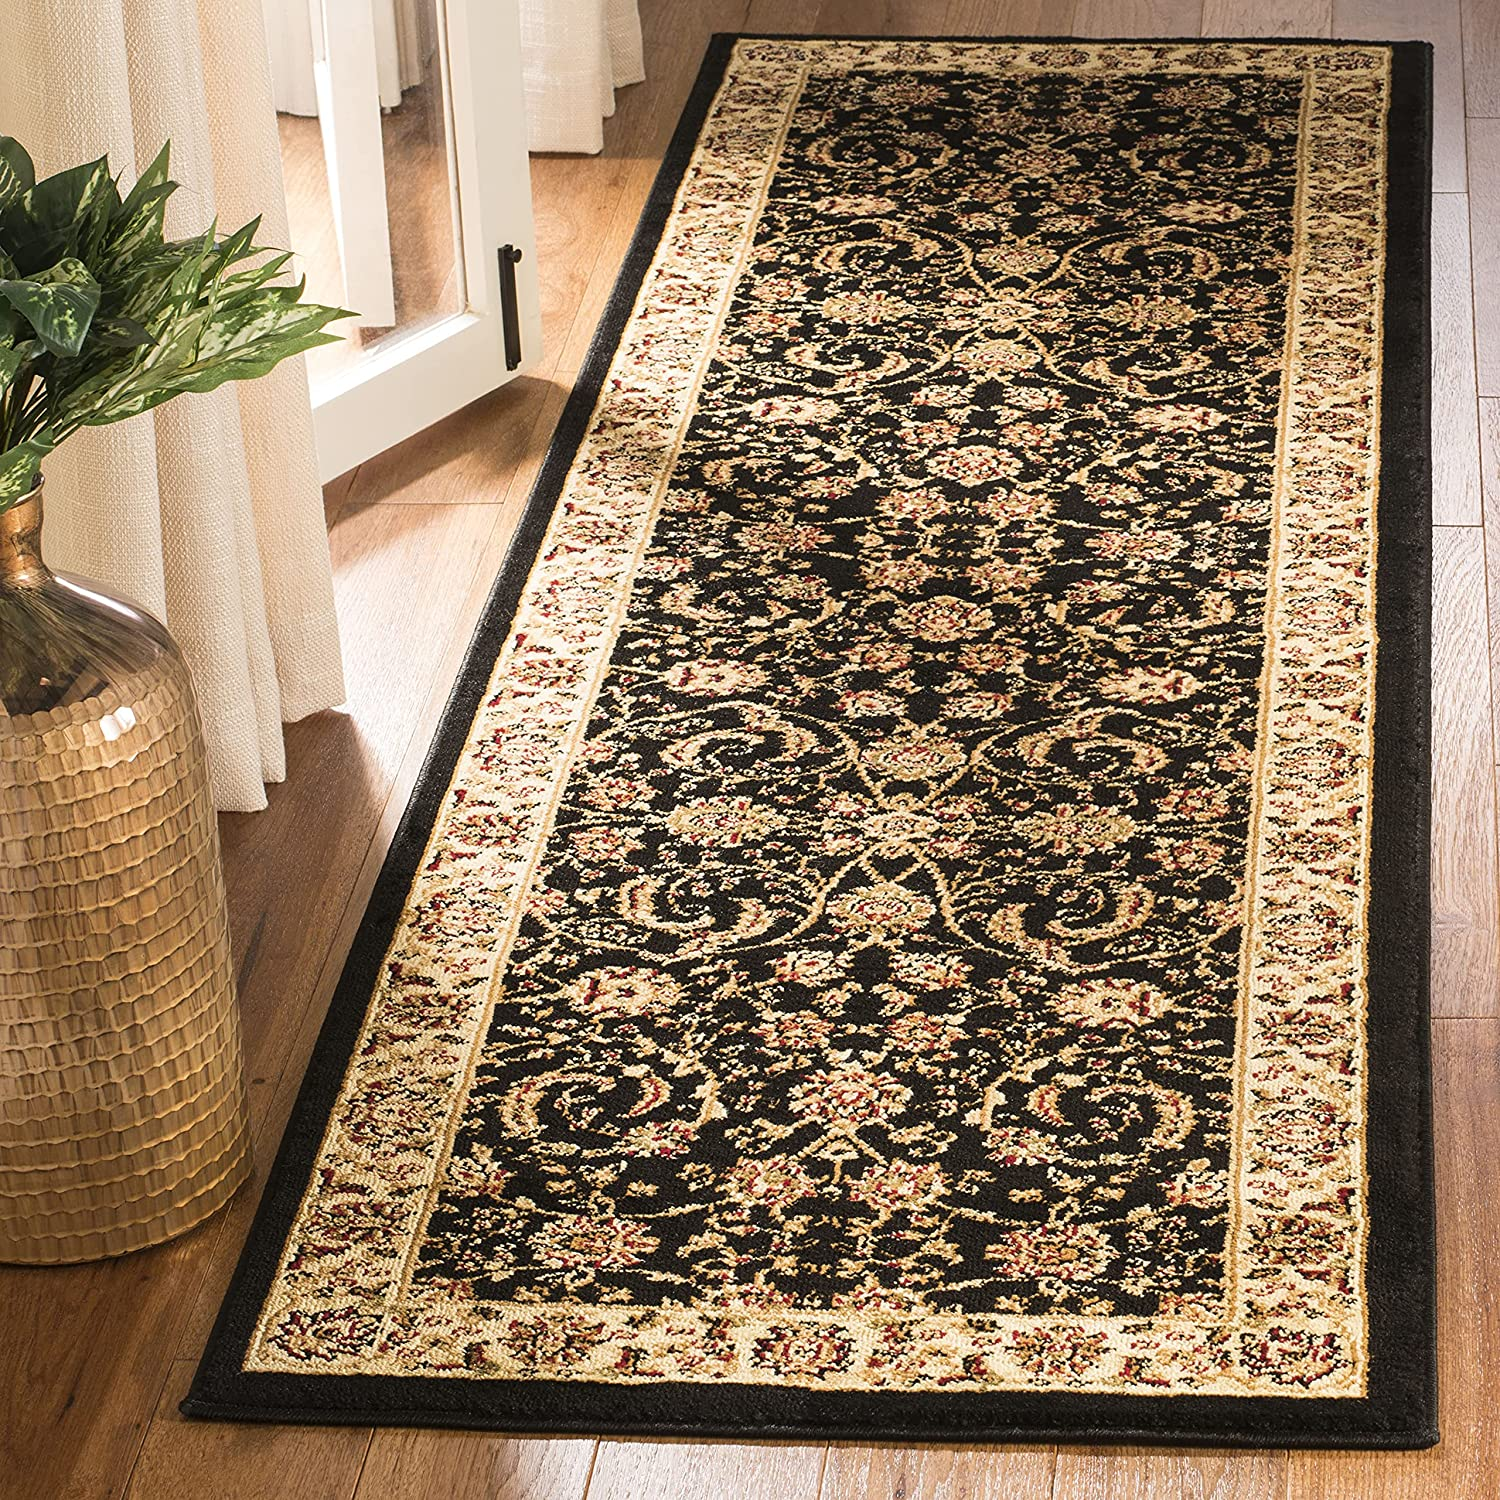 Safavieh Lyndhurst Max 76% OFF Collection LNH219A Surprise price Traditional Oriental Non-S